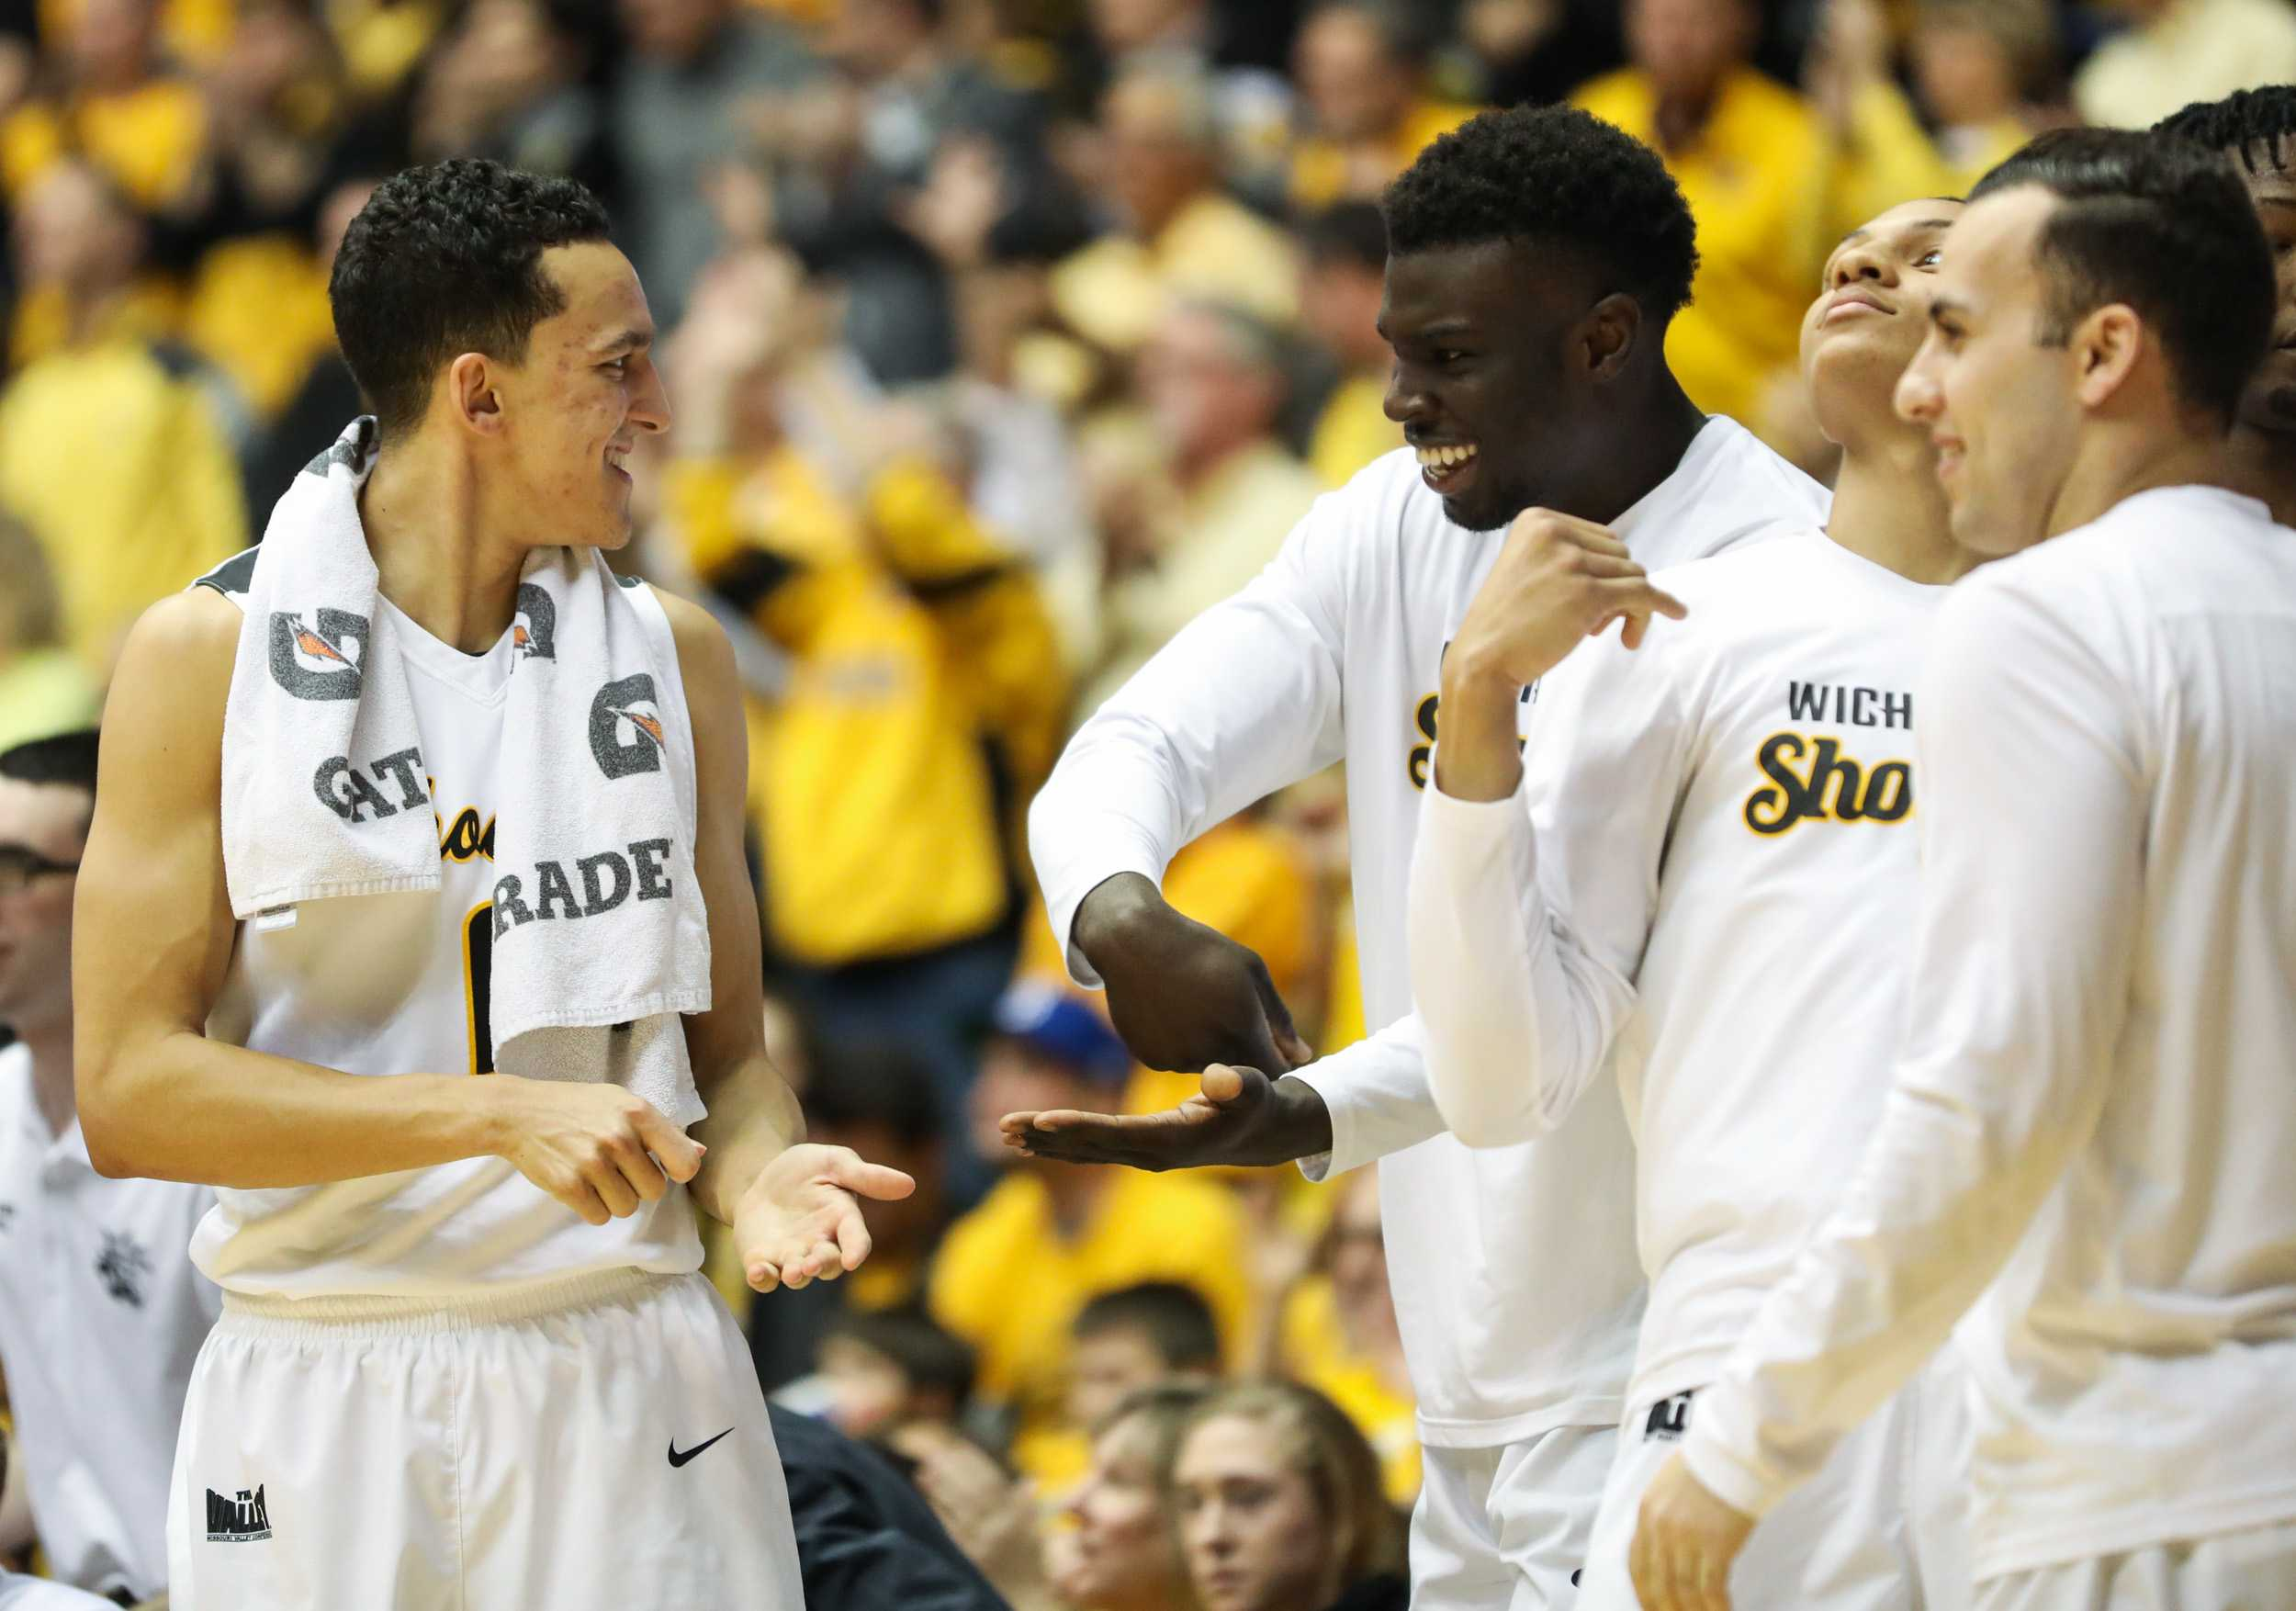 Wichita State's Landry Shamet (11) and Eric Hamilton (25) celebrate during the game against Illinois State in Koch Arena. (Feb. 4, 2017)